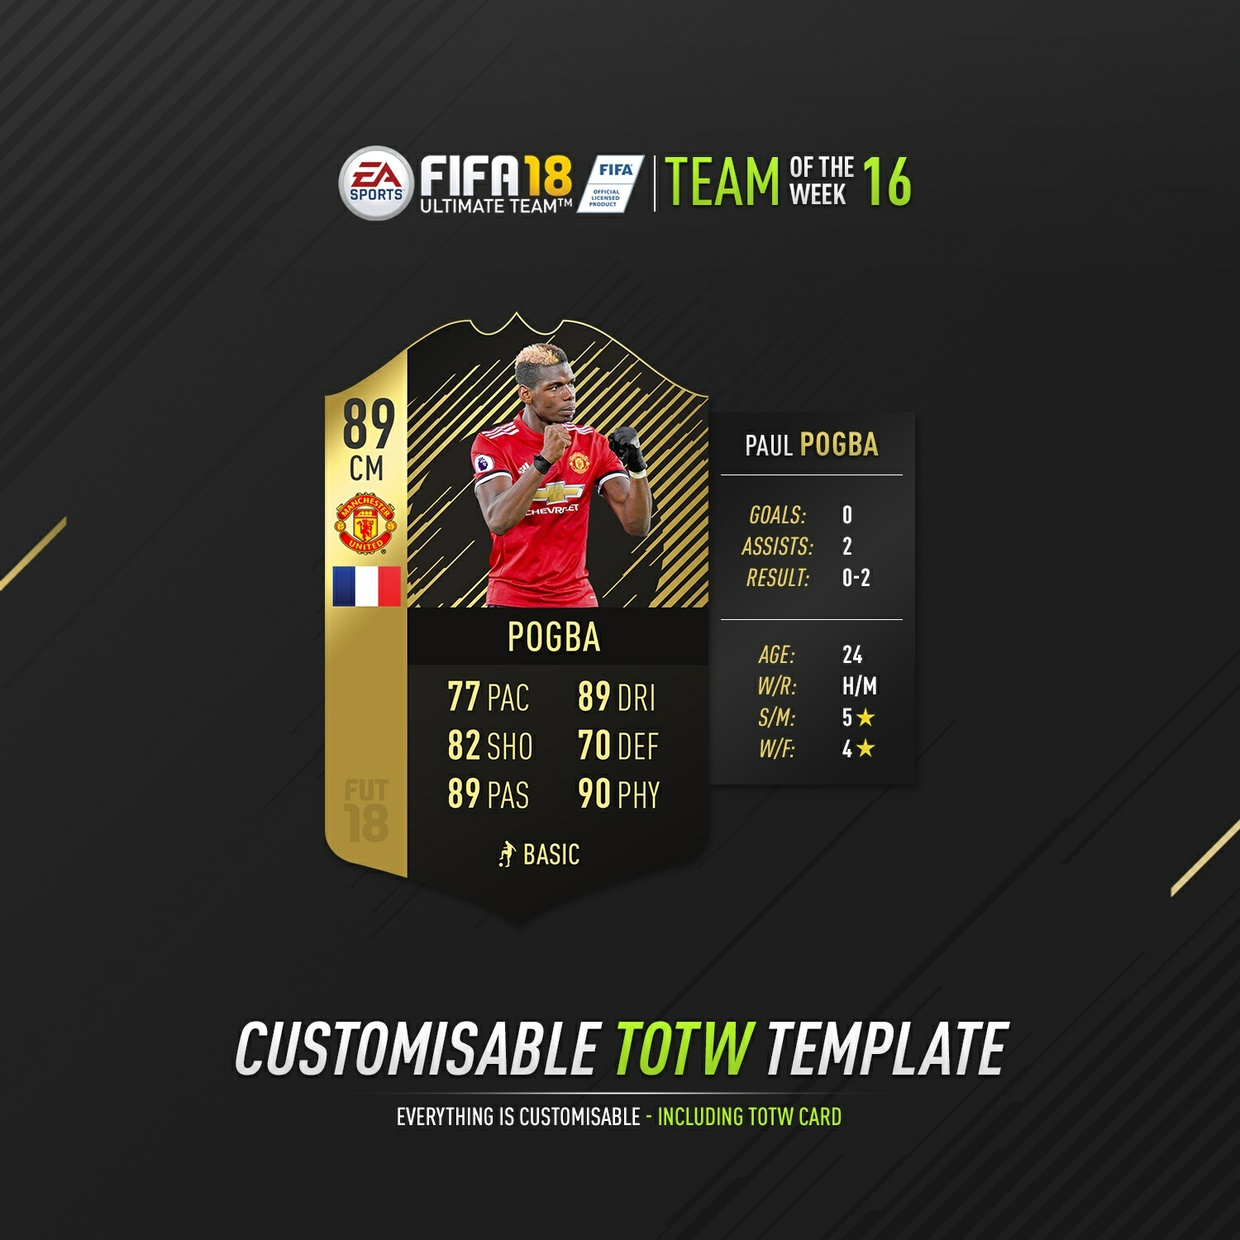 FIFA 18 Customisable TOTW Candidate Template (Photoshop)